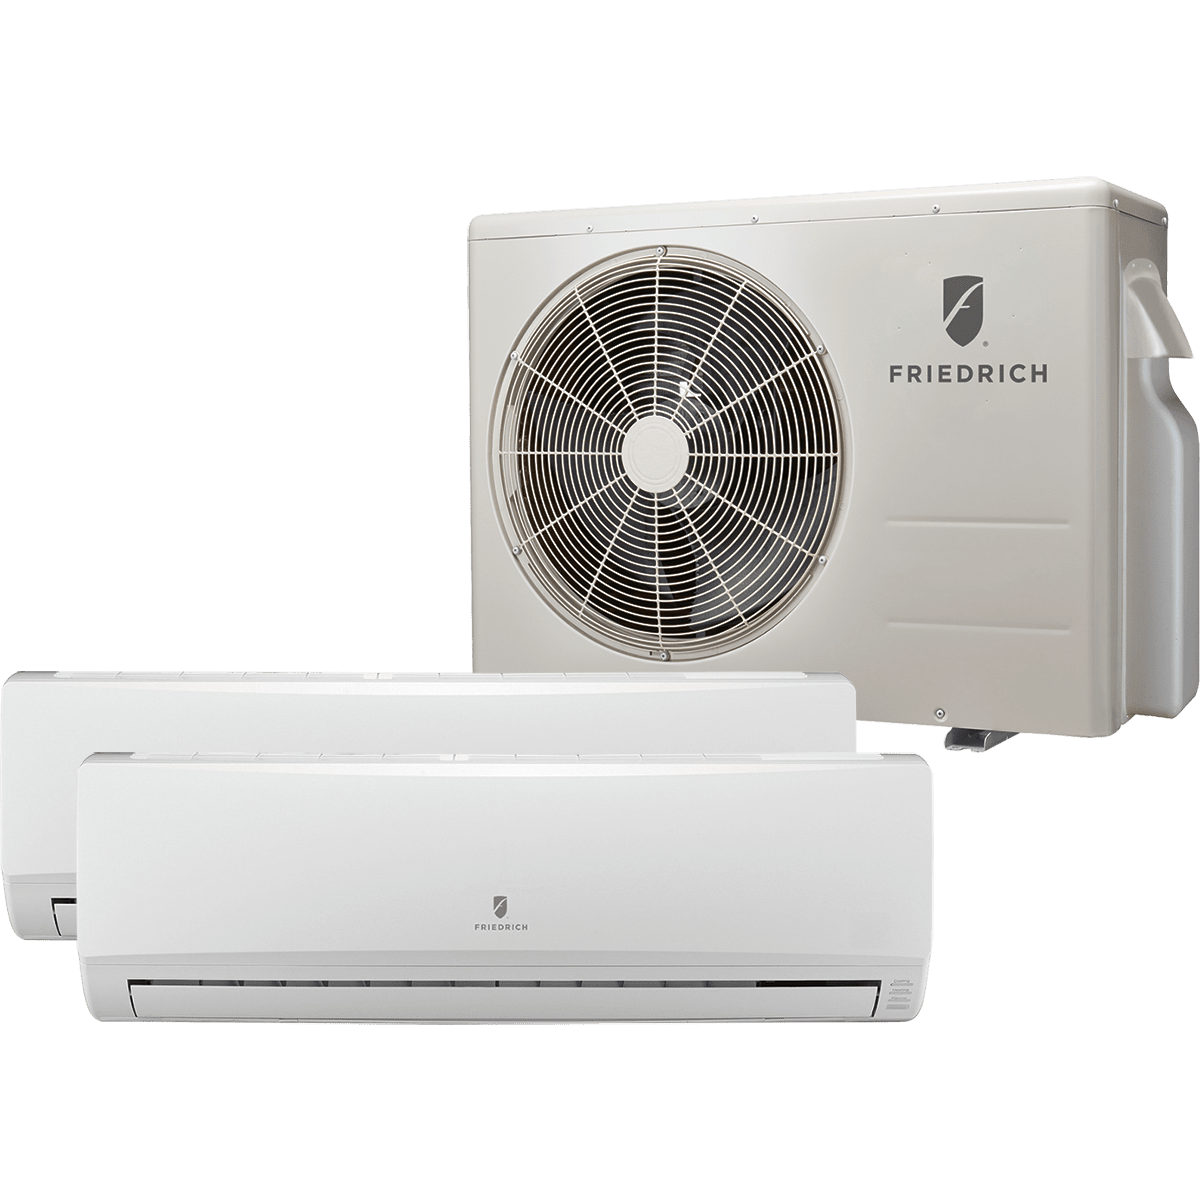 Friedrich m24dyf ductless mini split heat pump free Ductless ac